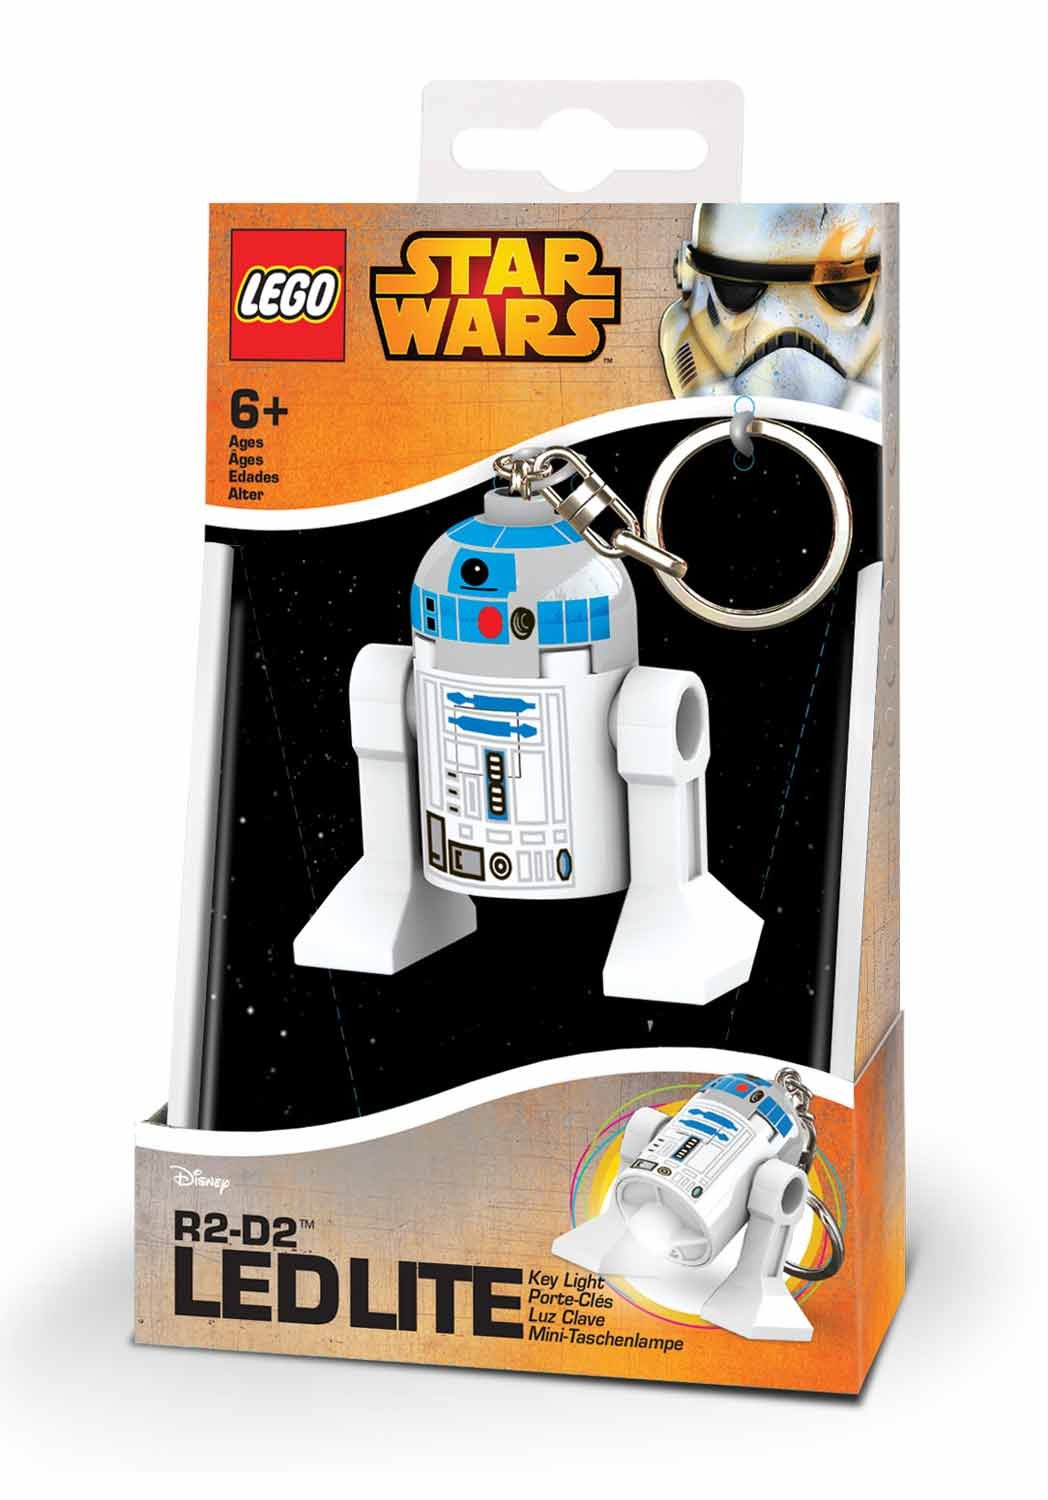 LEGO - Star Wars R2D2, mini linterna, 7,6 cm (20394-15)